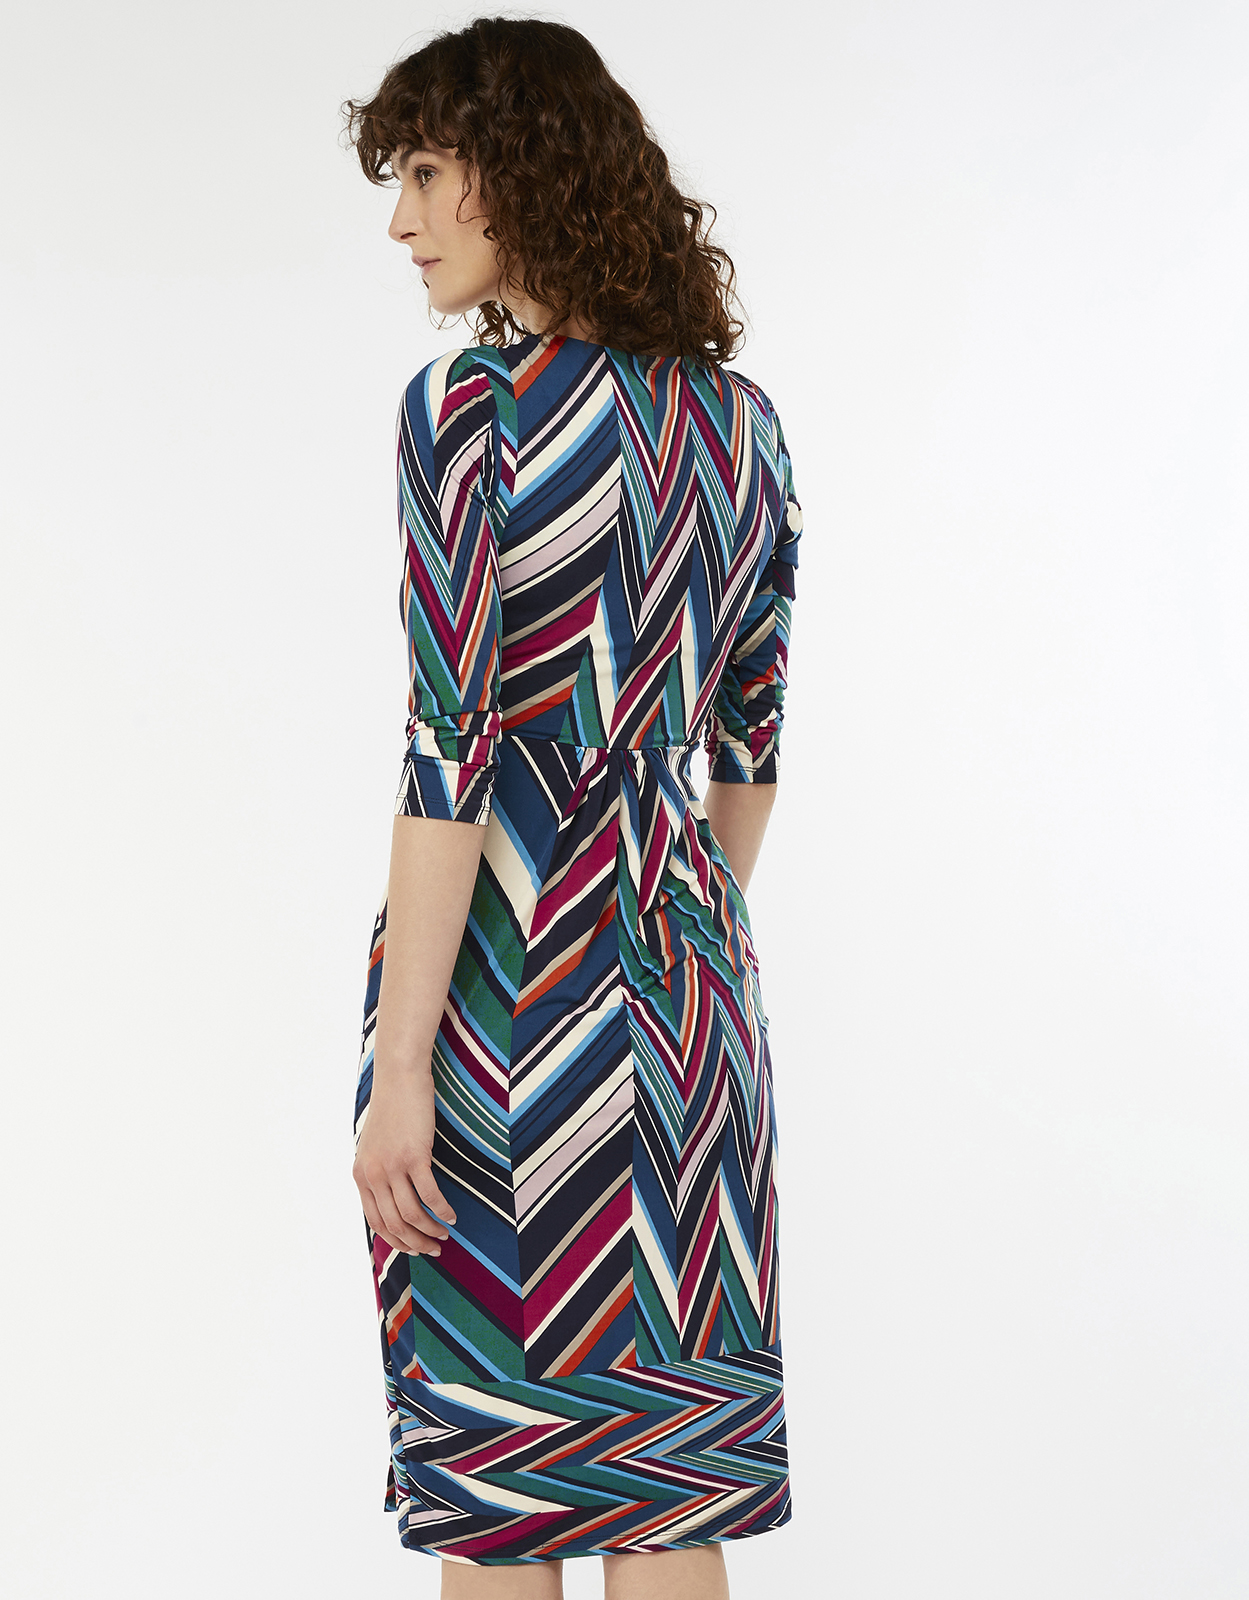 Monsoon Arabella Print Dress